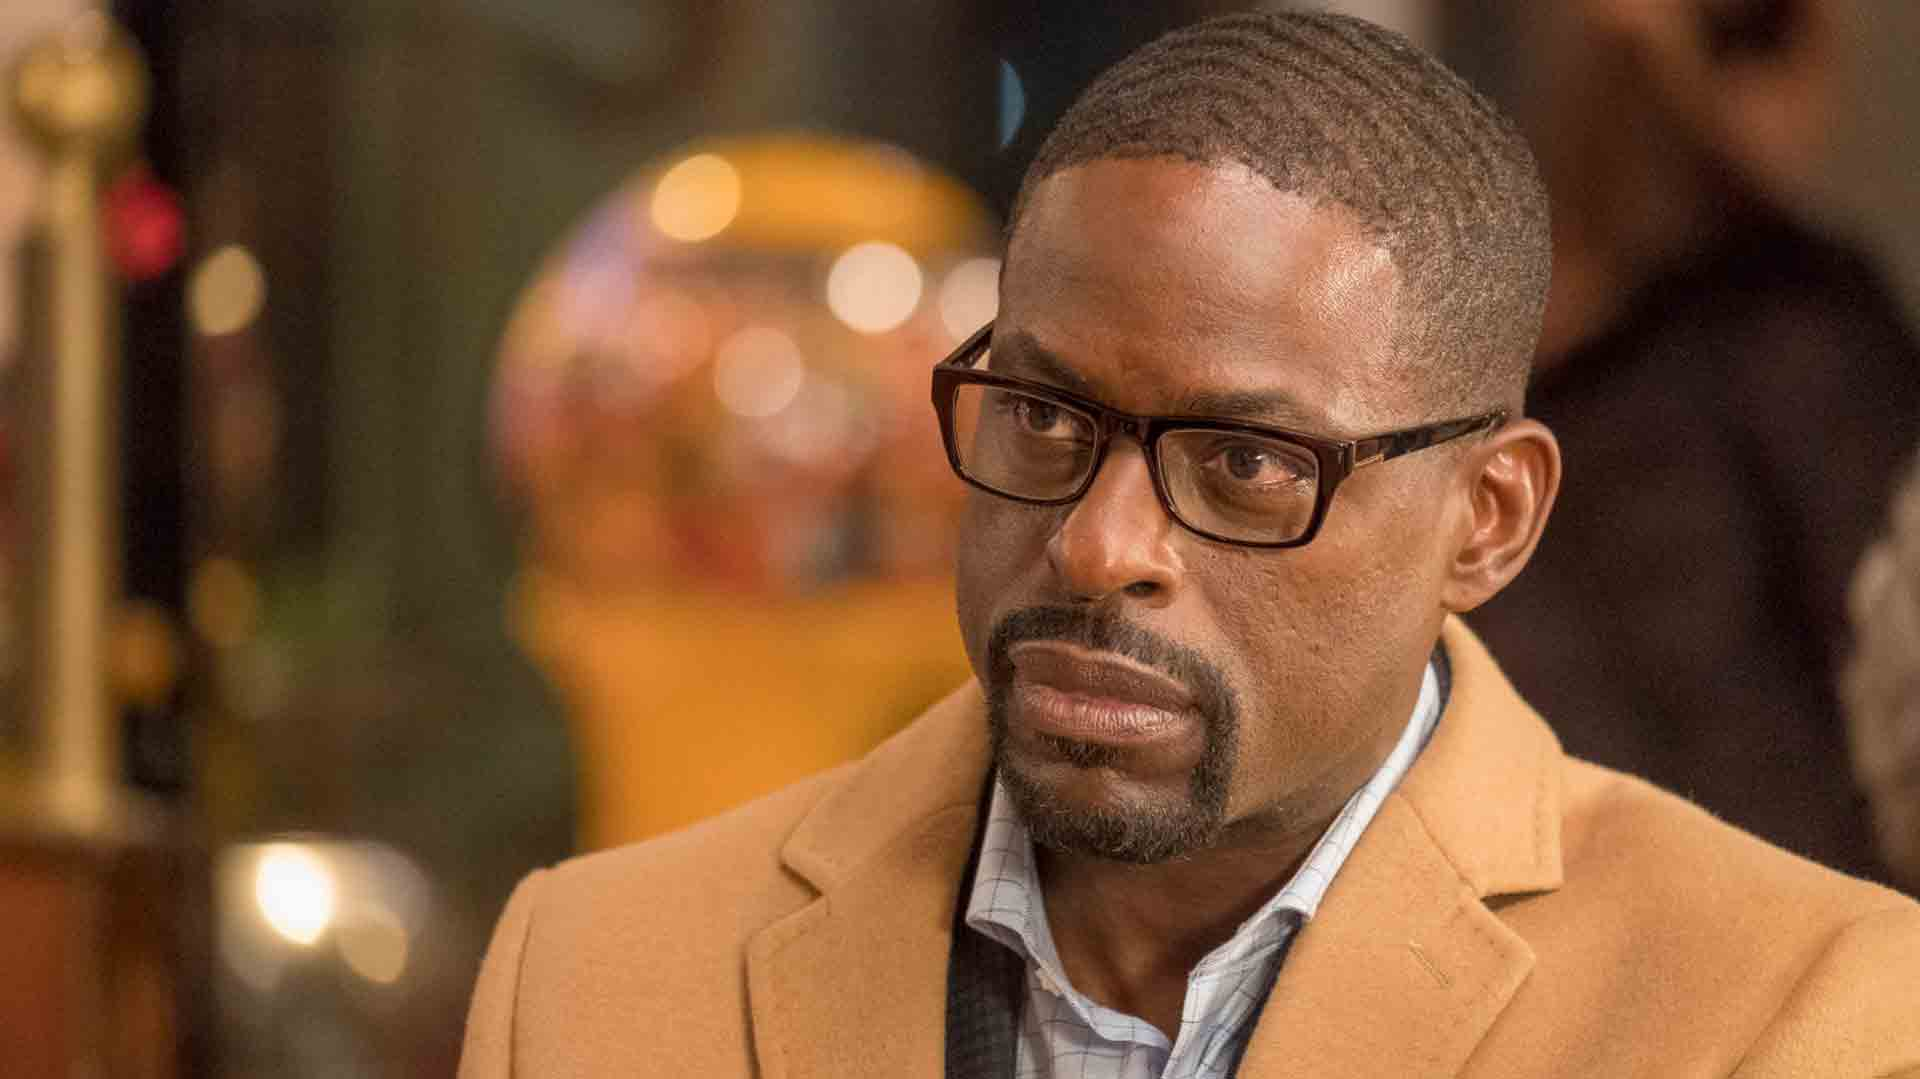 This Is Us Too: The Last Seven Weeks – Winter Premiere